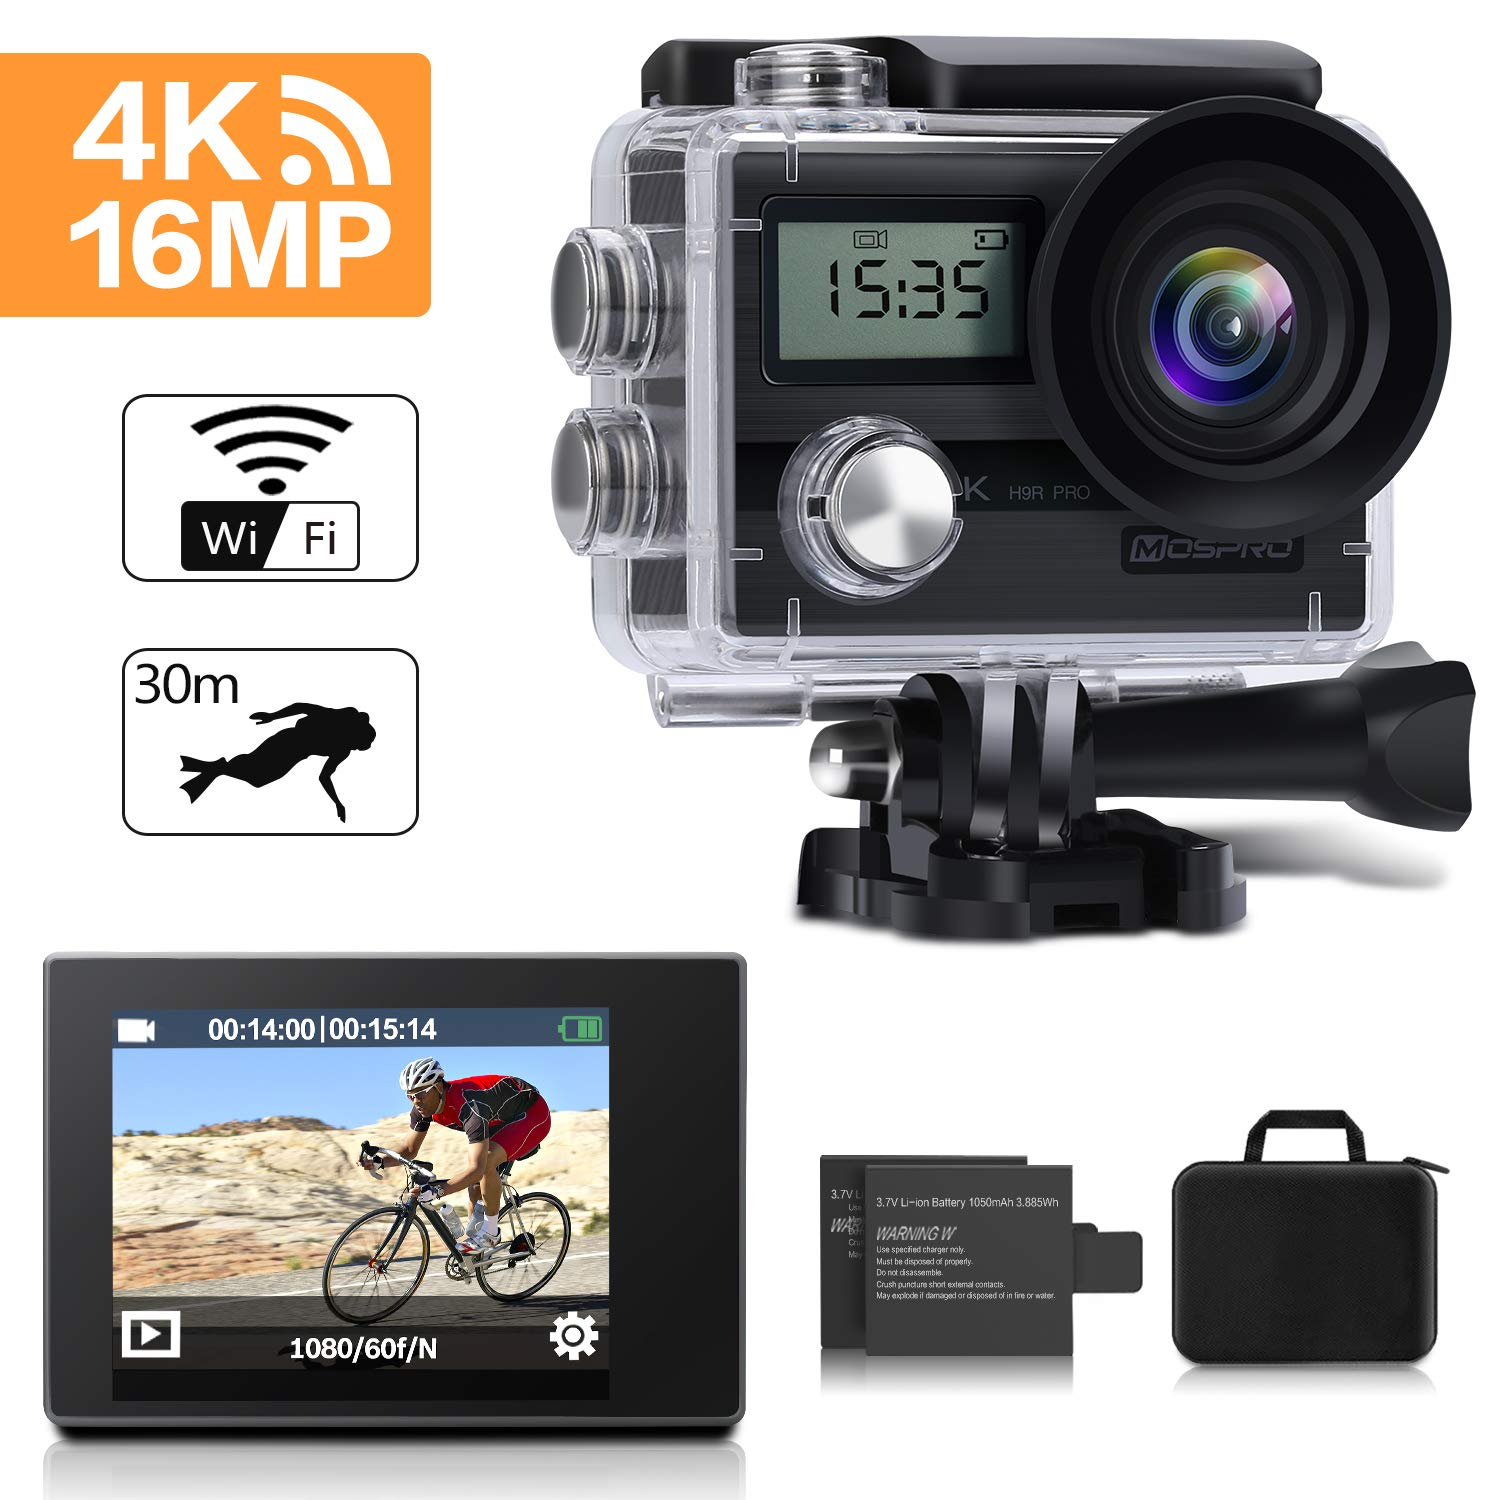 Action Camera, MOSPRO 4K 16MP Dual Screen WiFi Waterproof Sports Cam 170 Degree Wide Angle DV Camcorder with 2 Rechargeable Batteries 19 Mounting Accessories Kit